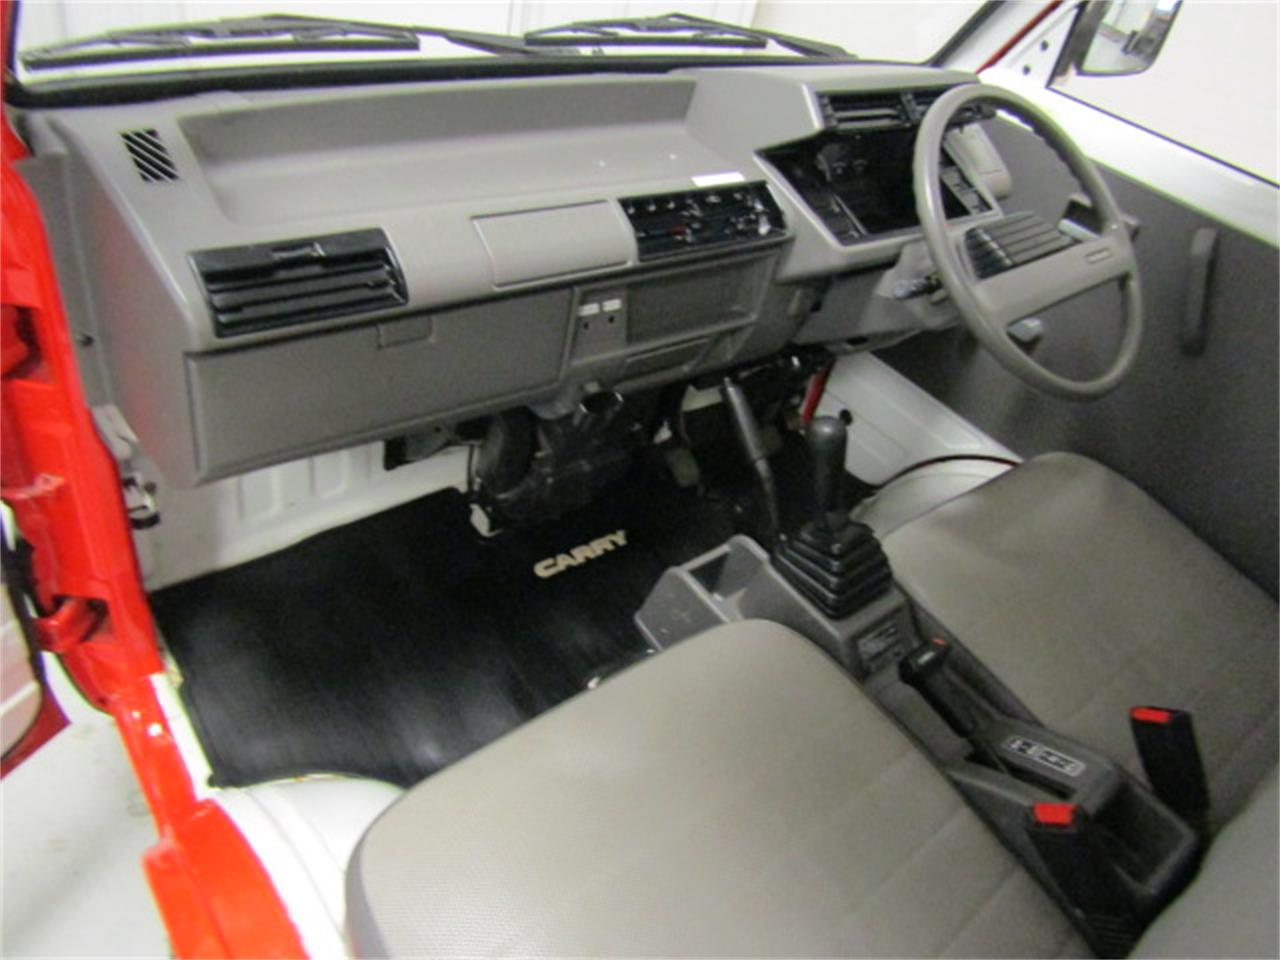 Large Picture of '91 Suzuki Carry located in Christiansburg Virginia - $7,989.00 Offered by Duncan Imports & Classic Cars - KIFI